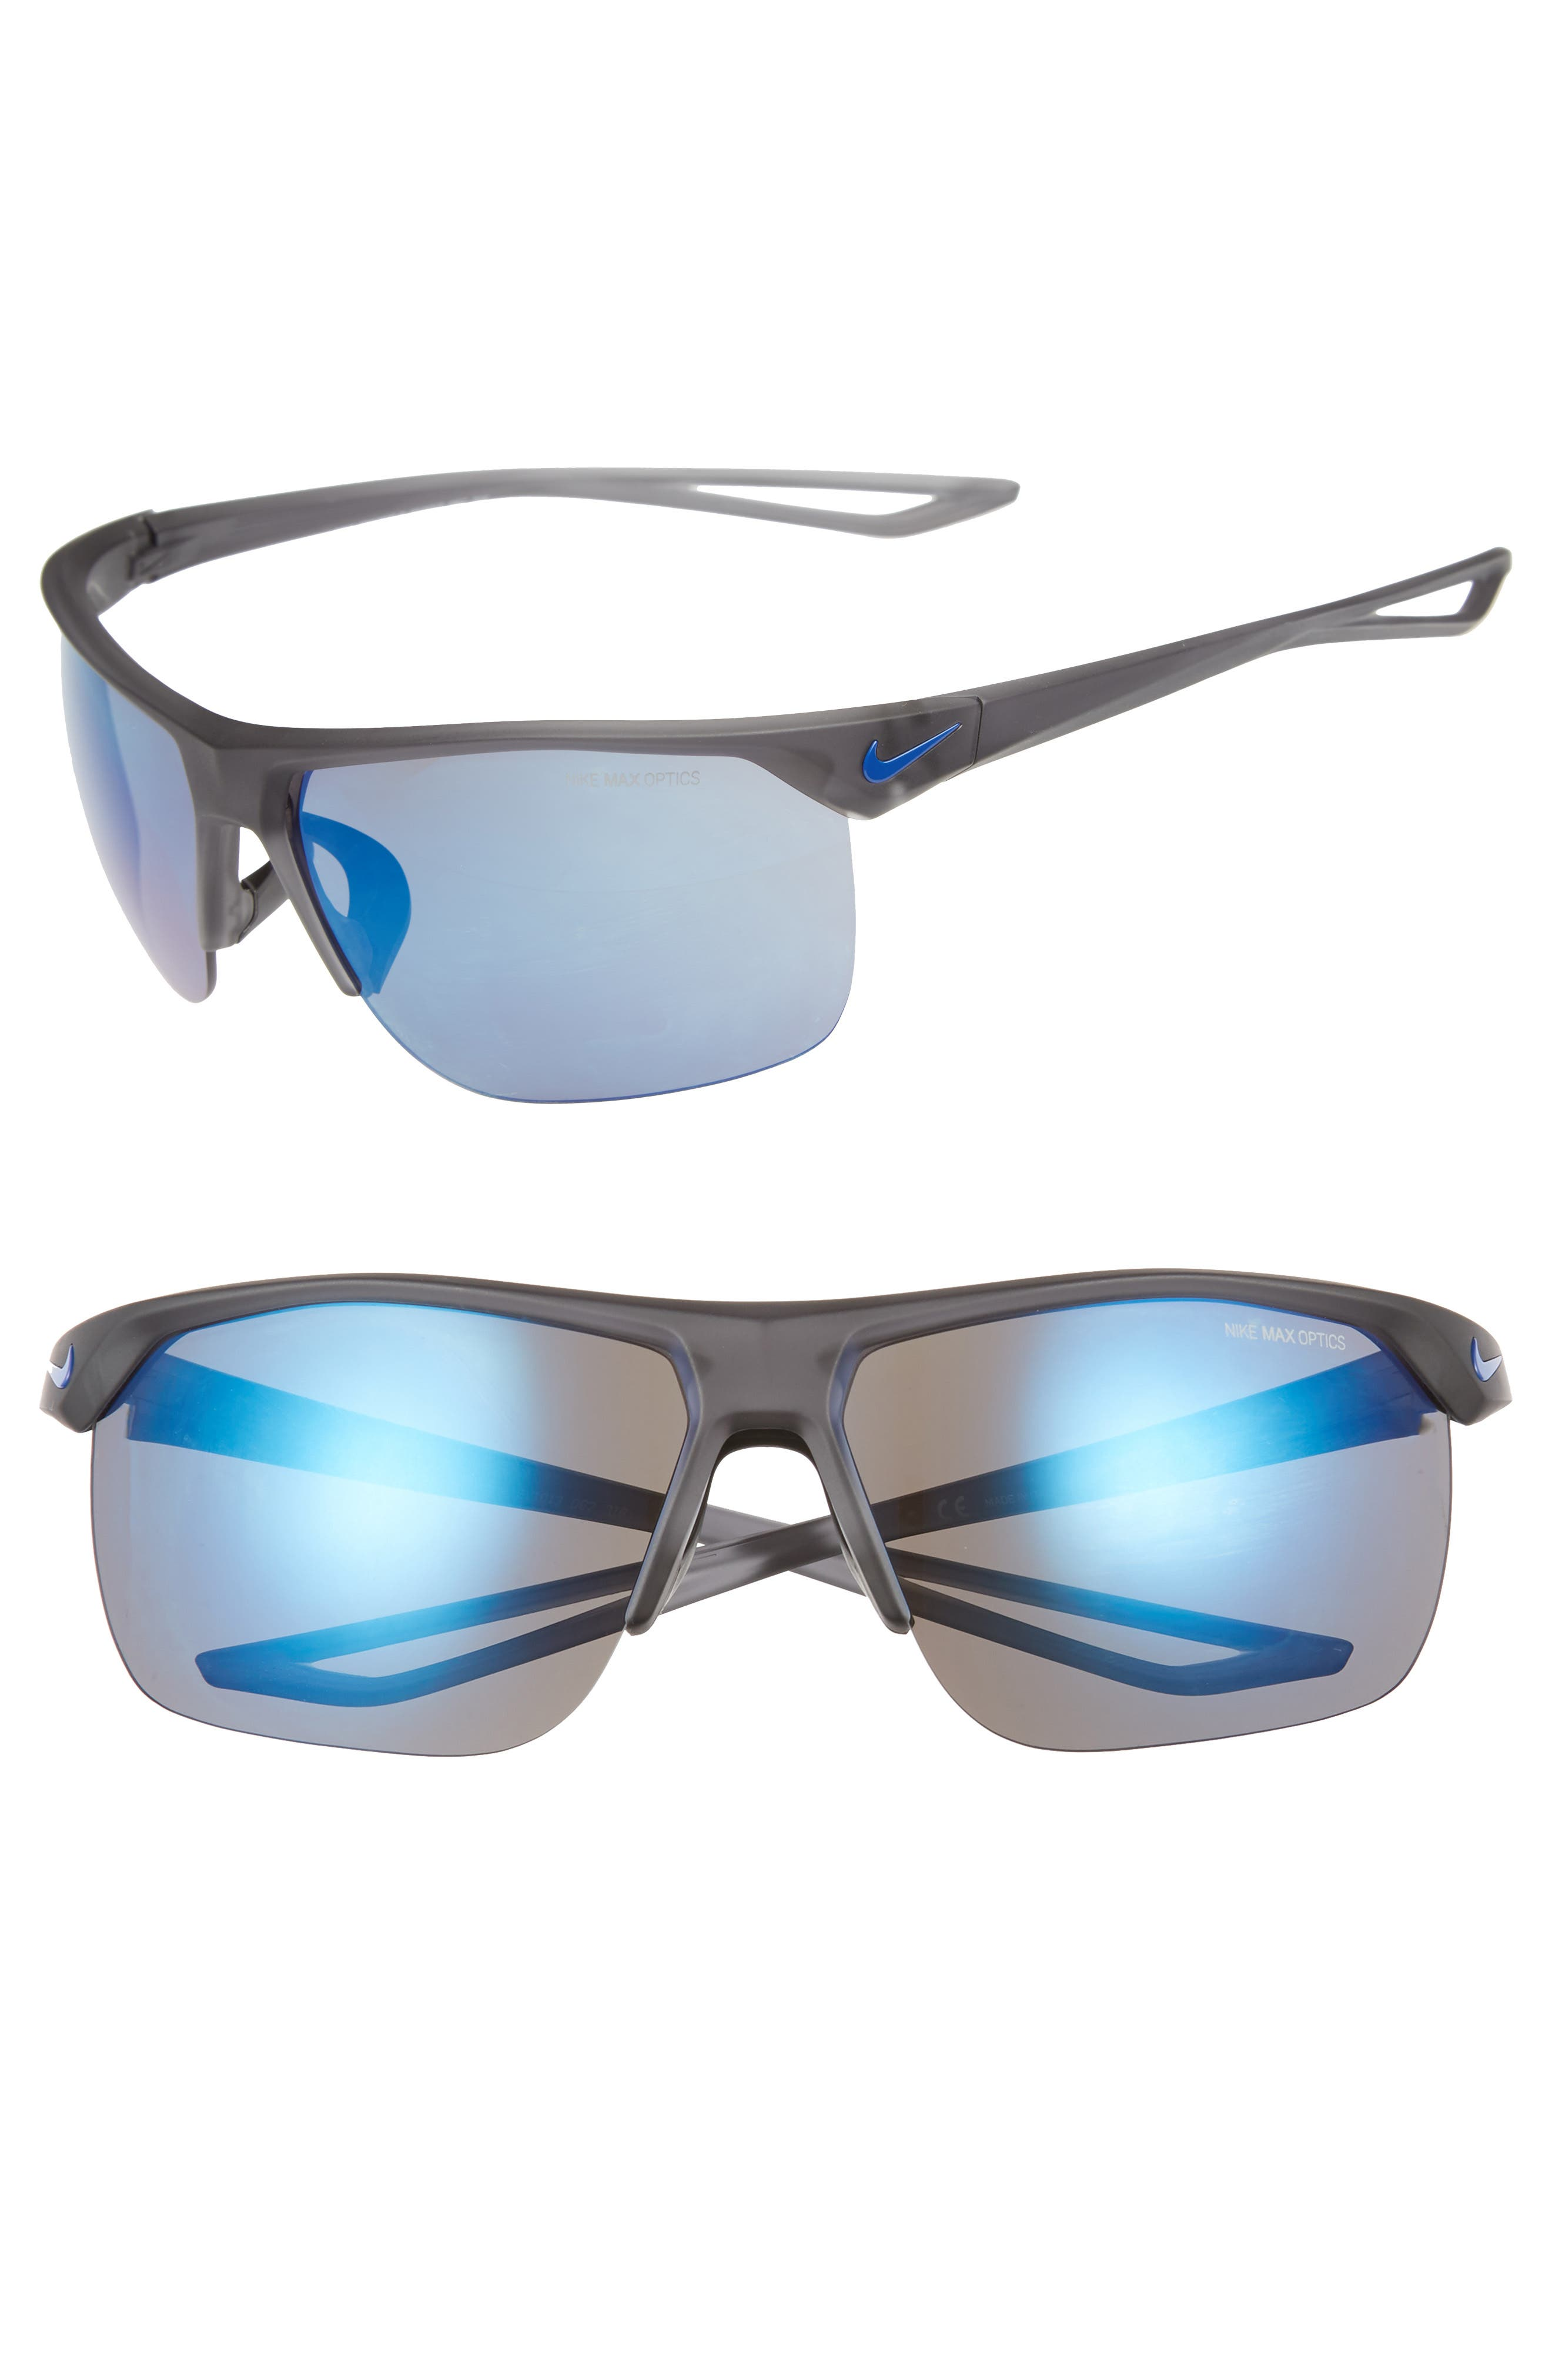 Trainer R 67mm Oversize Sunglasses,                         Main,                         color, MATTE GREY/ GREY BLUE MIRROR